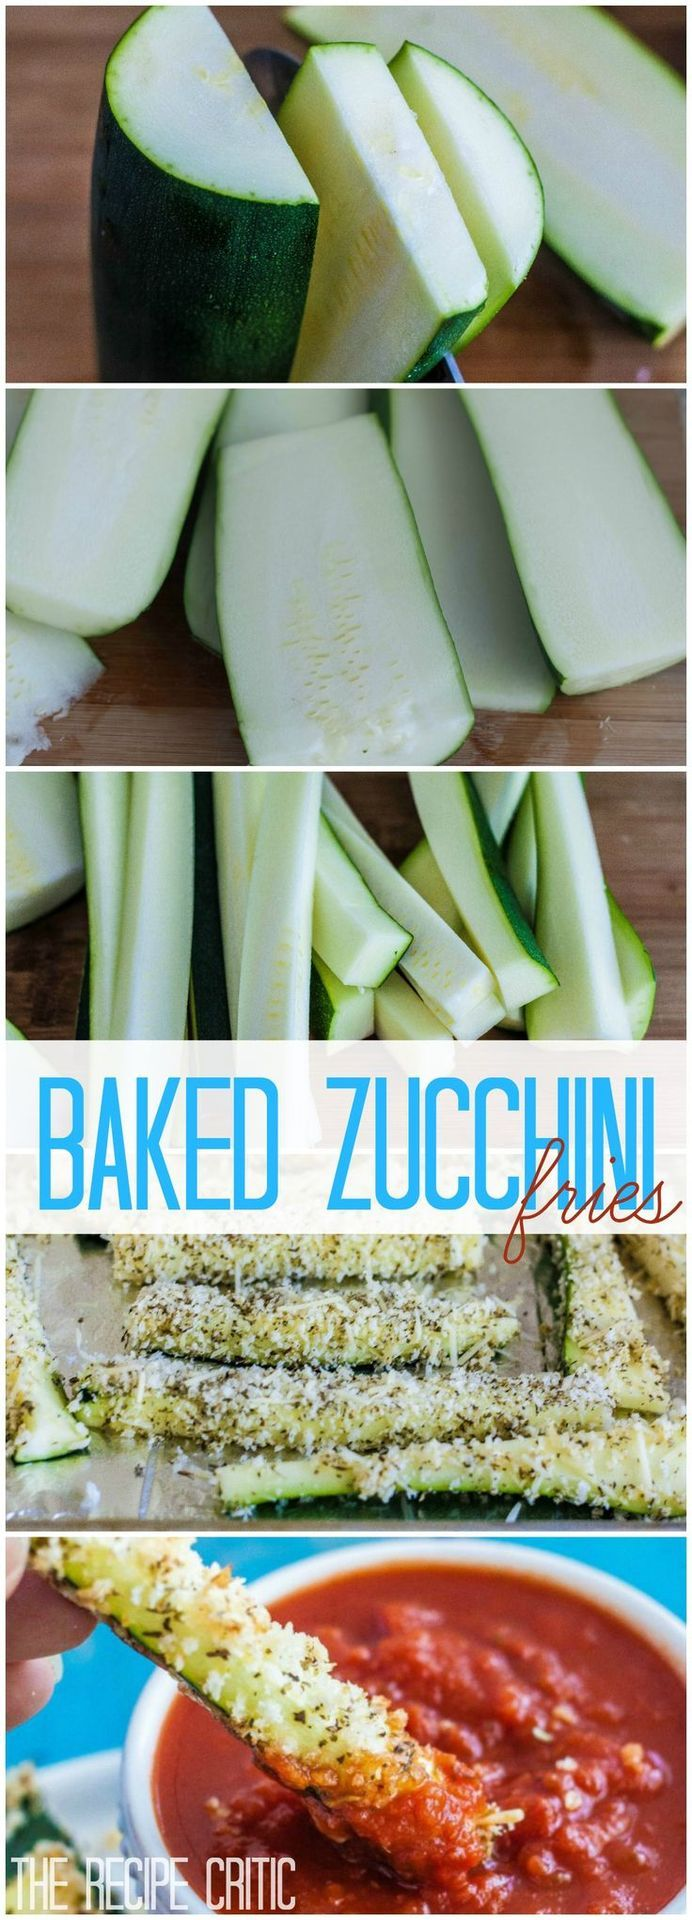 Baked Zucchini Fries. A healthy and delicious alternative to french fries! Use gluten free panko breadcrumbs or coconut for a crunchy finish!